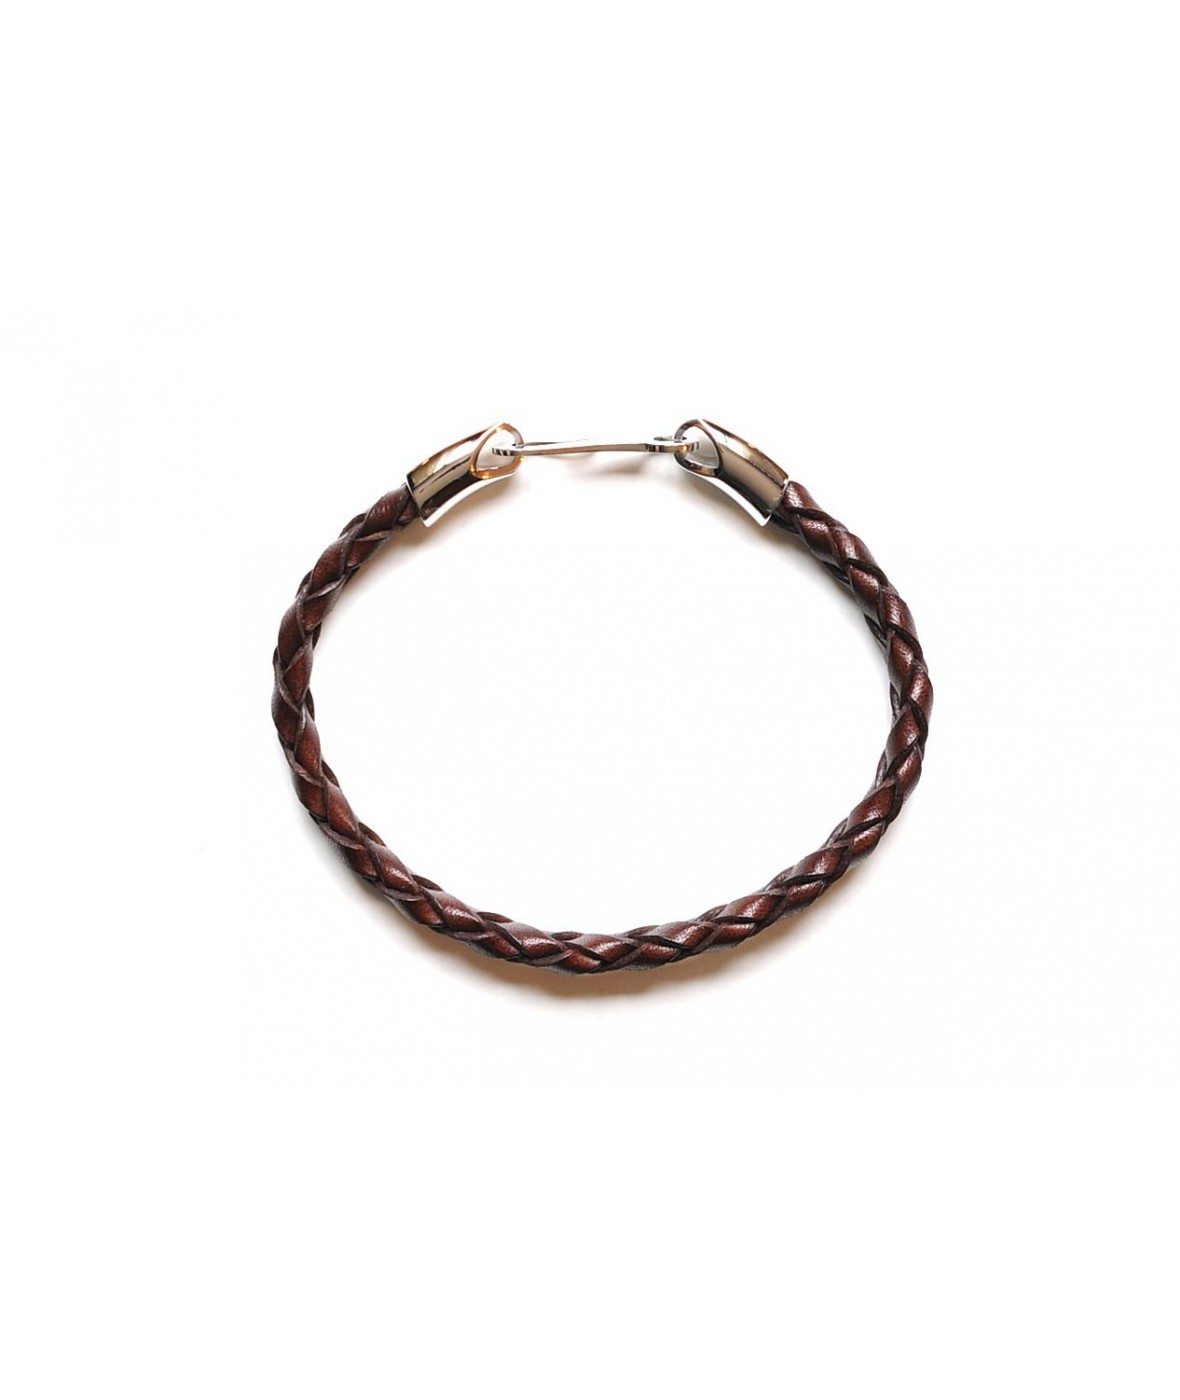 Santoni Bracelet Dark Brown